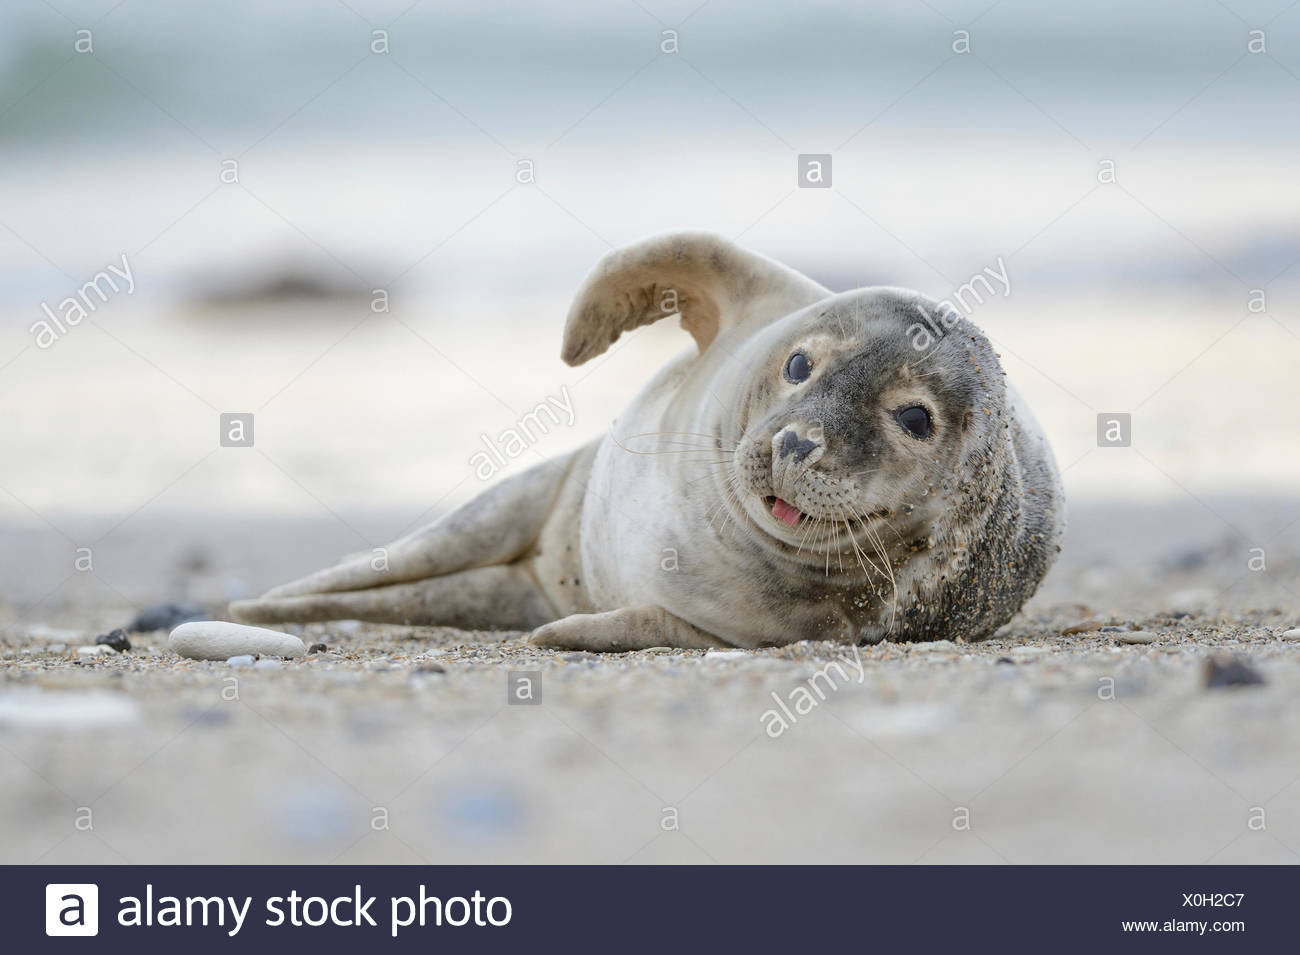 Grey Seal (Halichoerus grypus) sprawling on the beach and sticking out tongue, Helgoland, Helgoland, Schleswig-Holstein, Germany - Stock Image